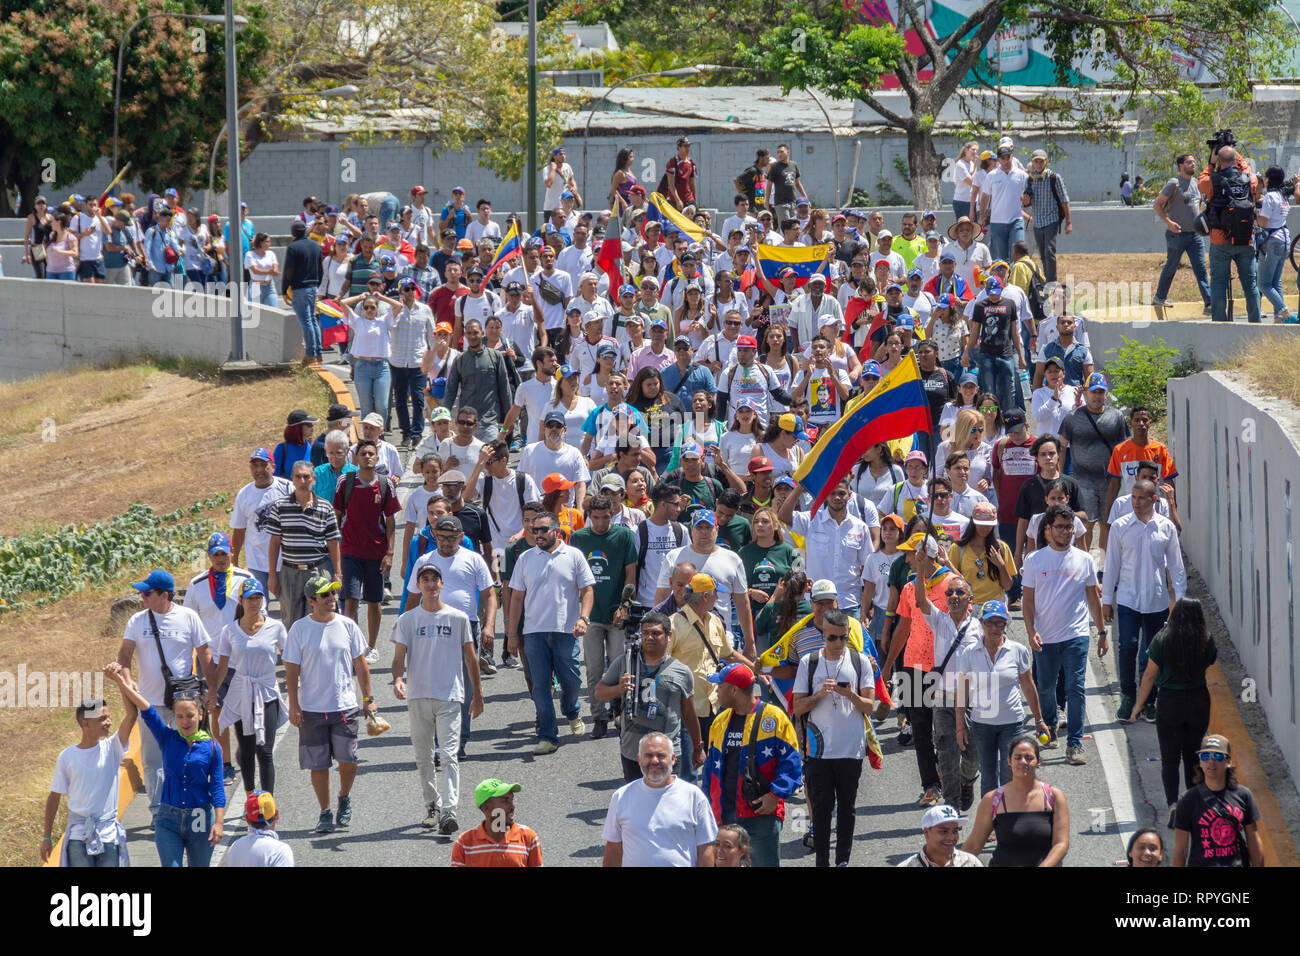 The citizens of Caracas gathered at the La Carlota air base to ask the Armed Forces to allow humanitarian aid into Venezuela and lay down their arms f - Stock Image